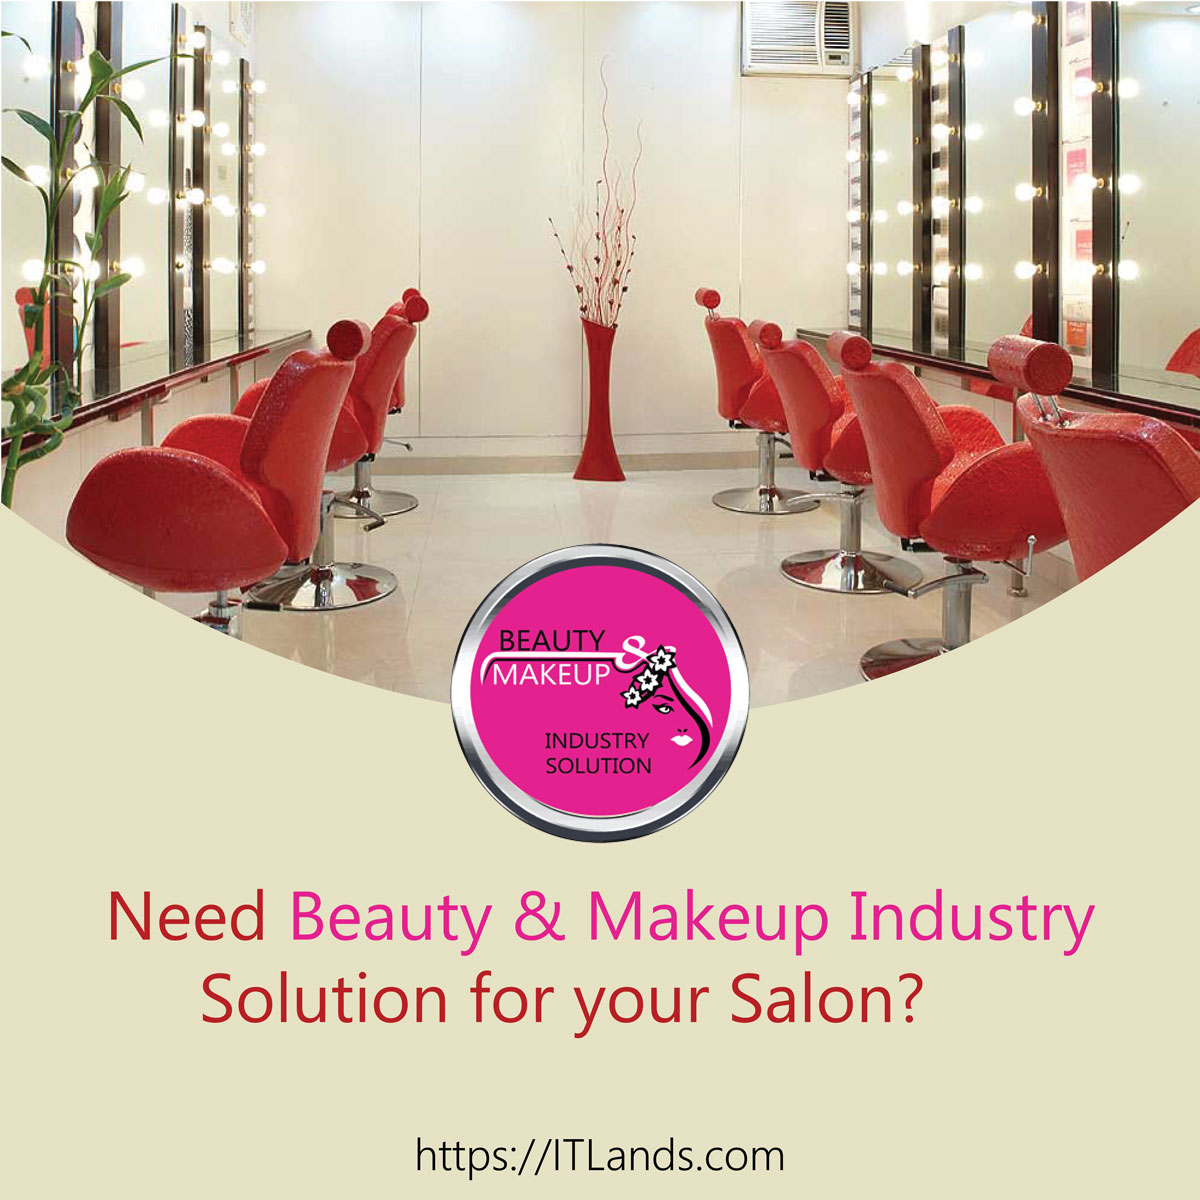 Beauty & Makeup Industry Solution